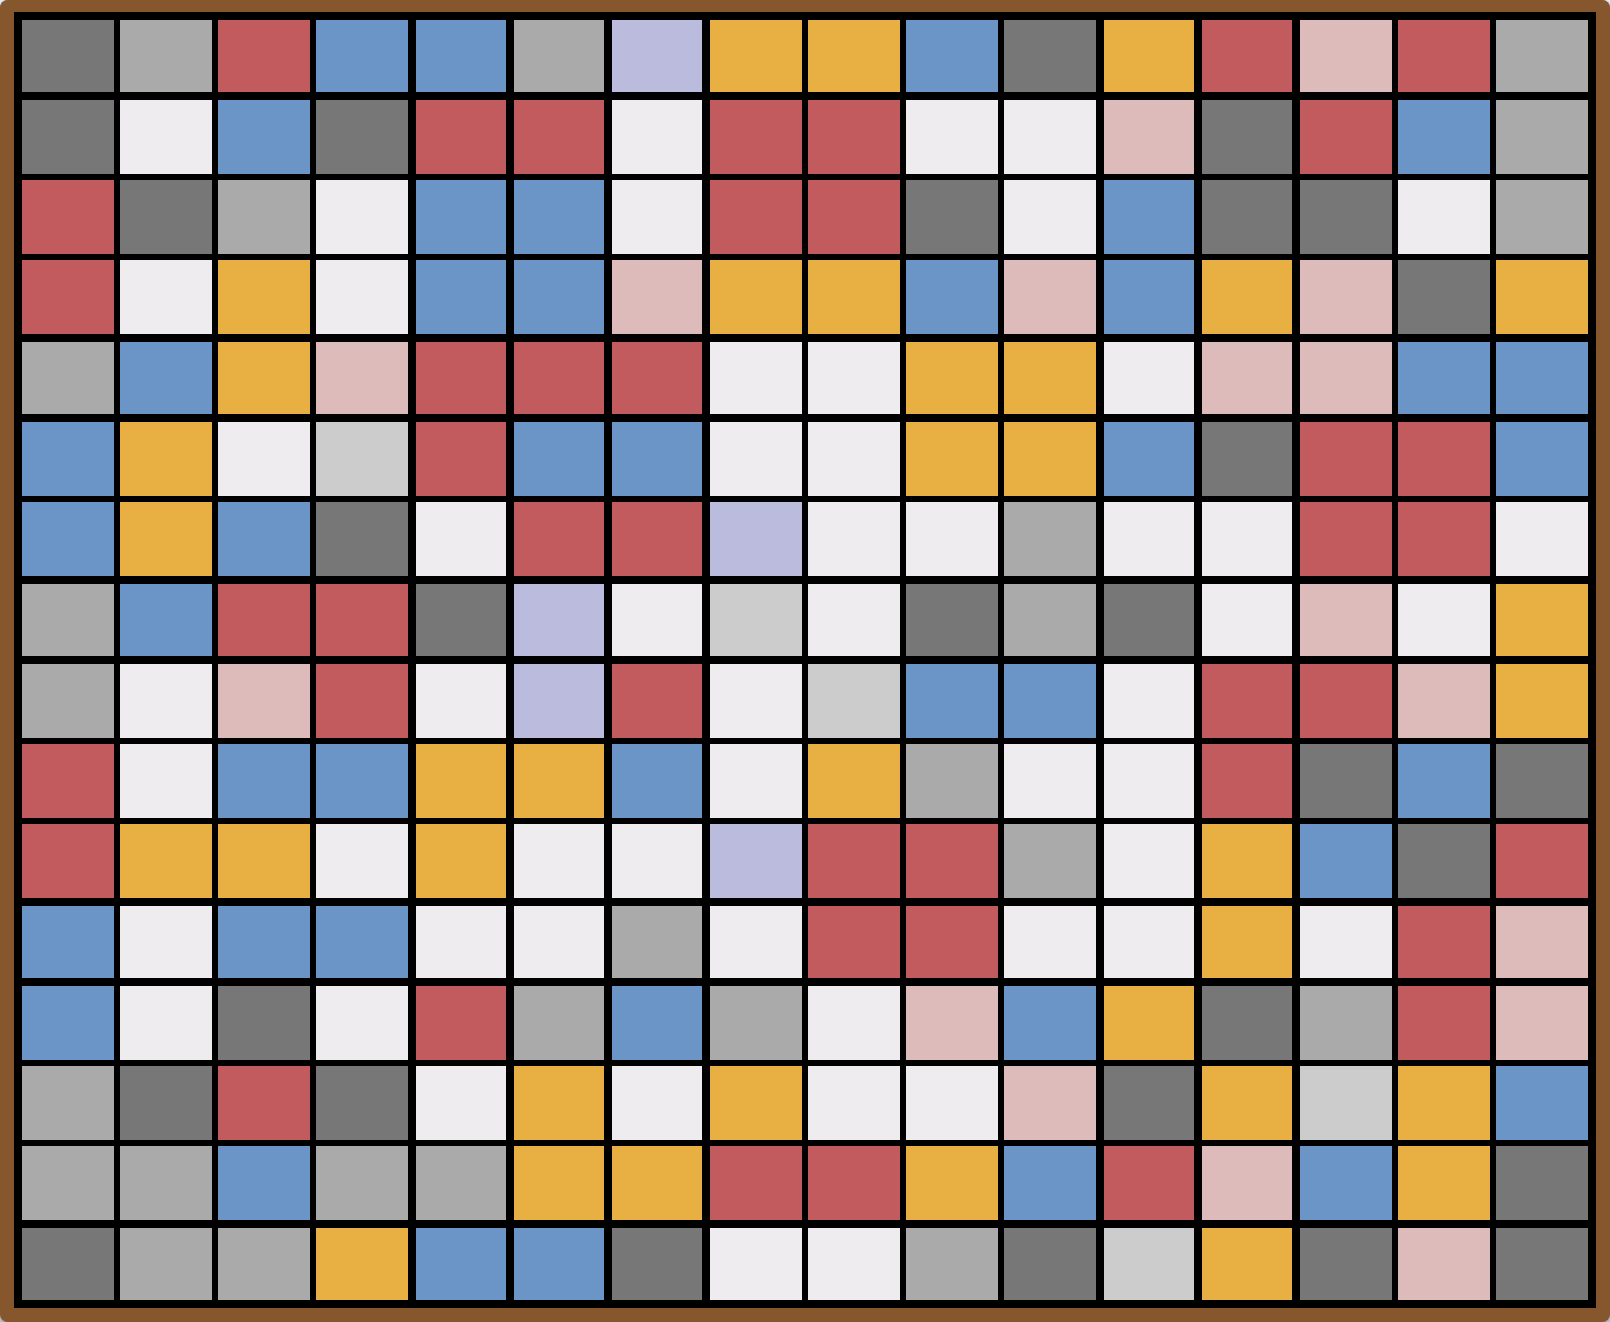 Screenshot of the Mondrian collection on CodePen